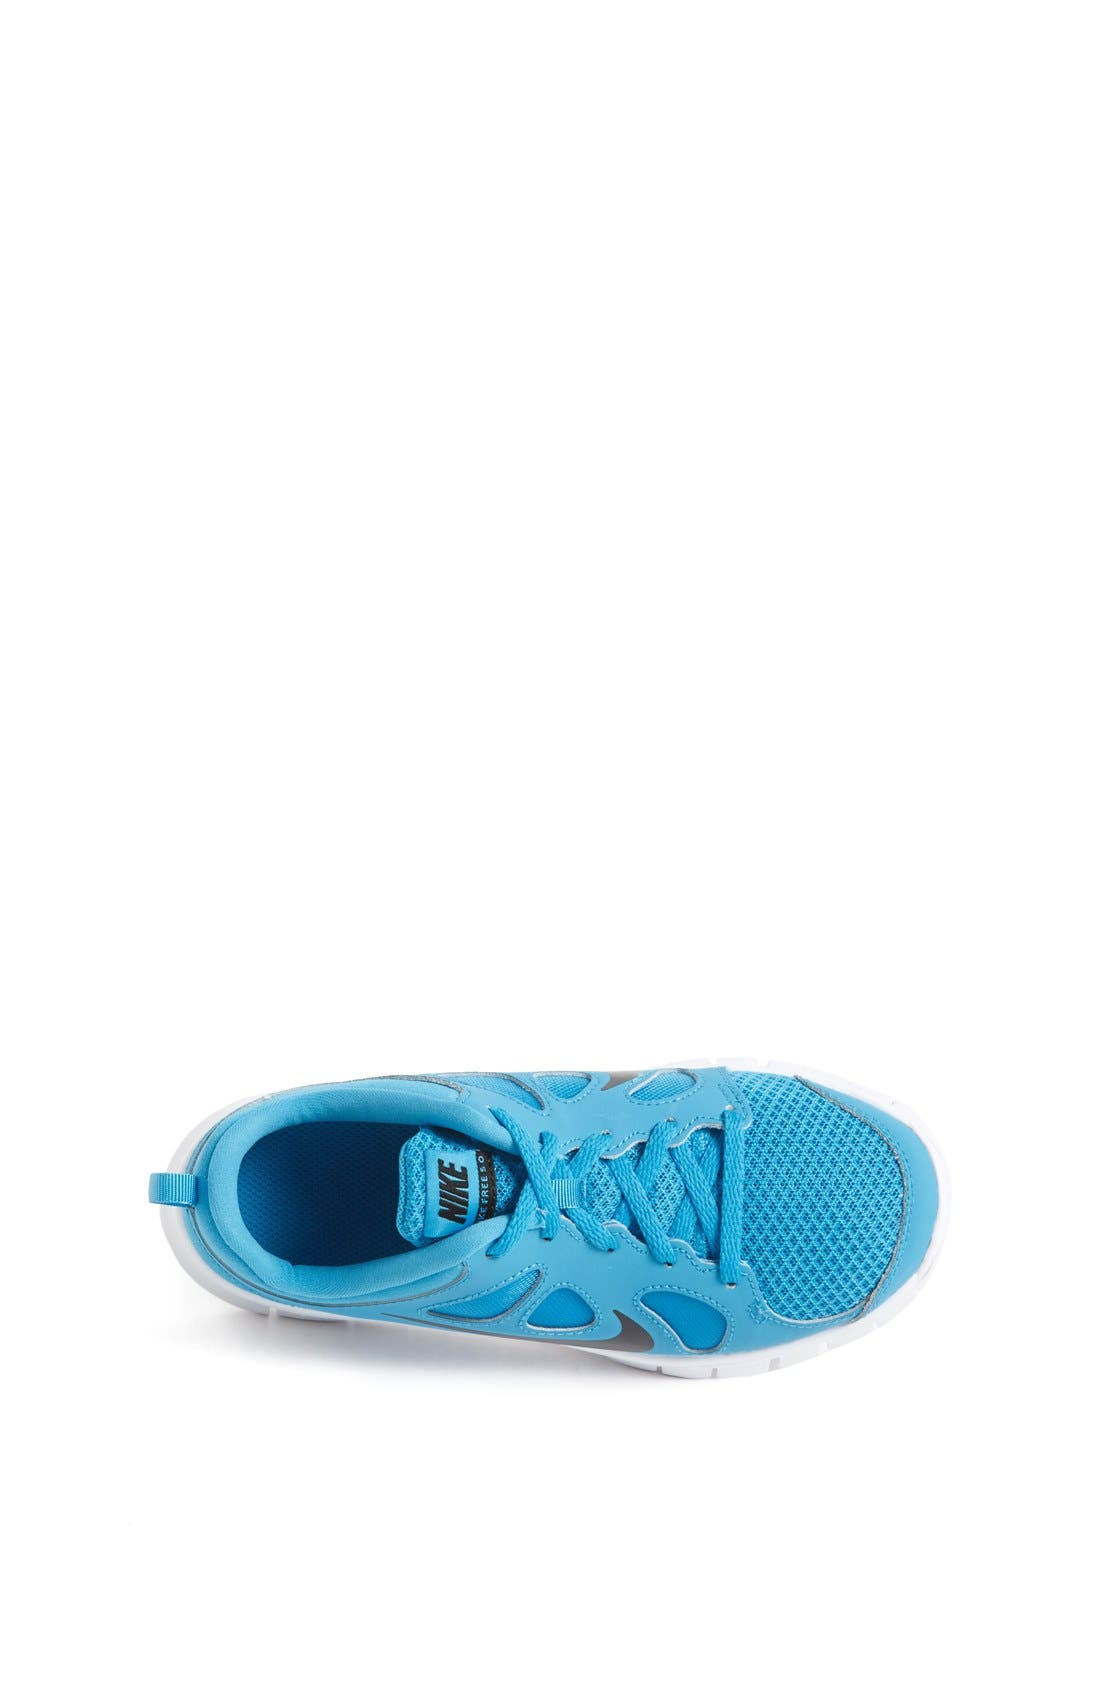 Alternate Image 3  - Nike 'Free Run 5.0' Running Shoe (Toddler & Little Kid)